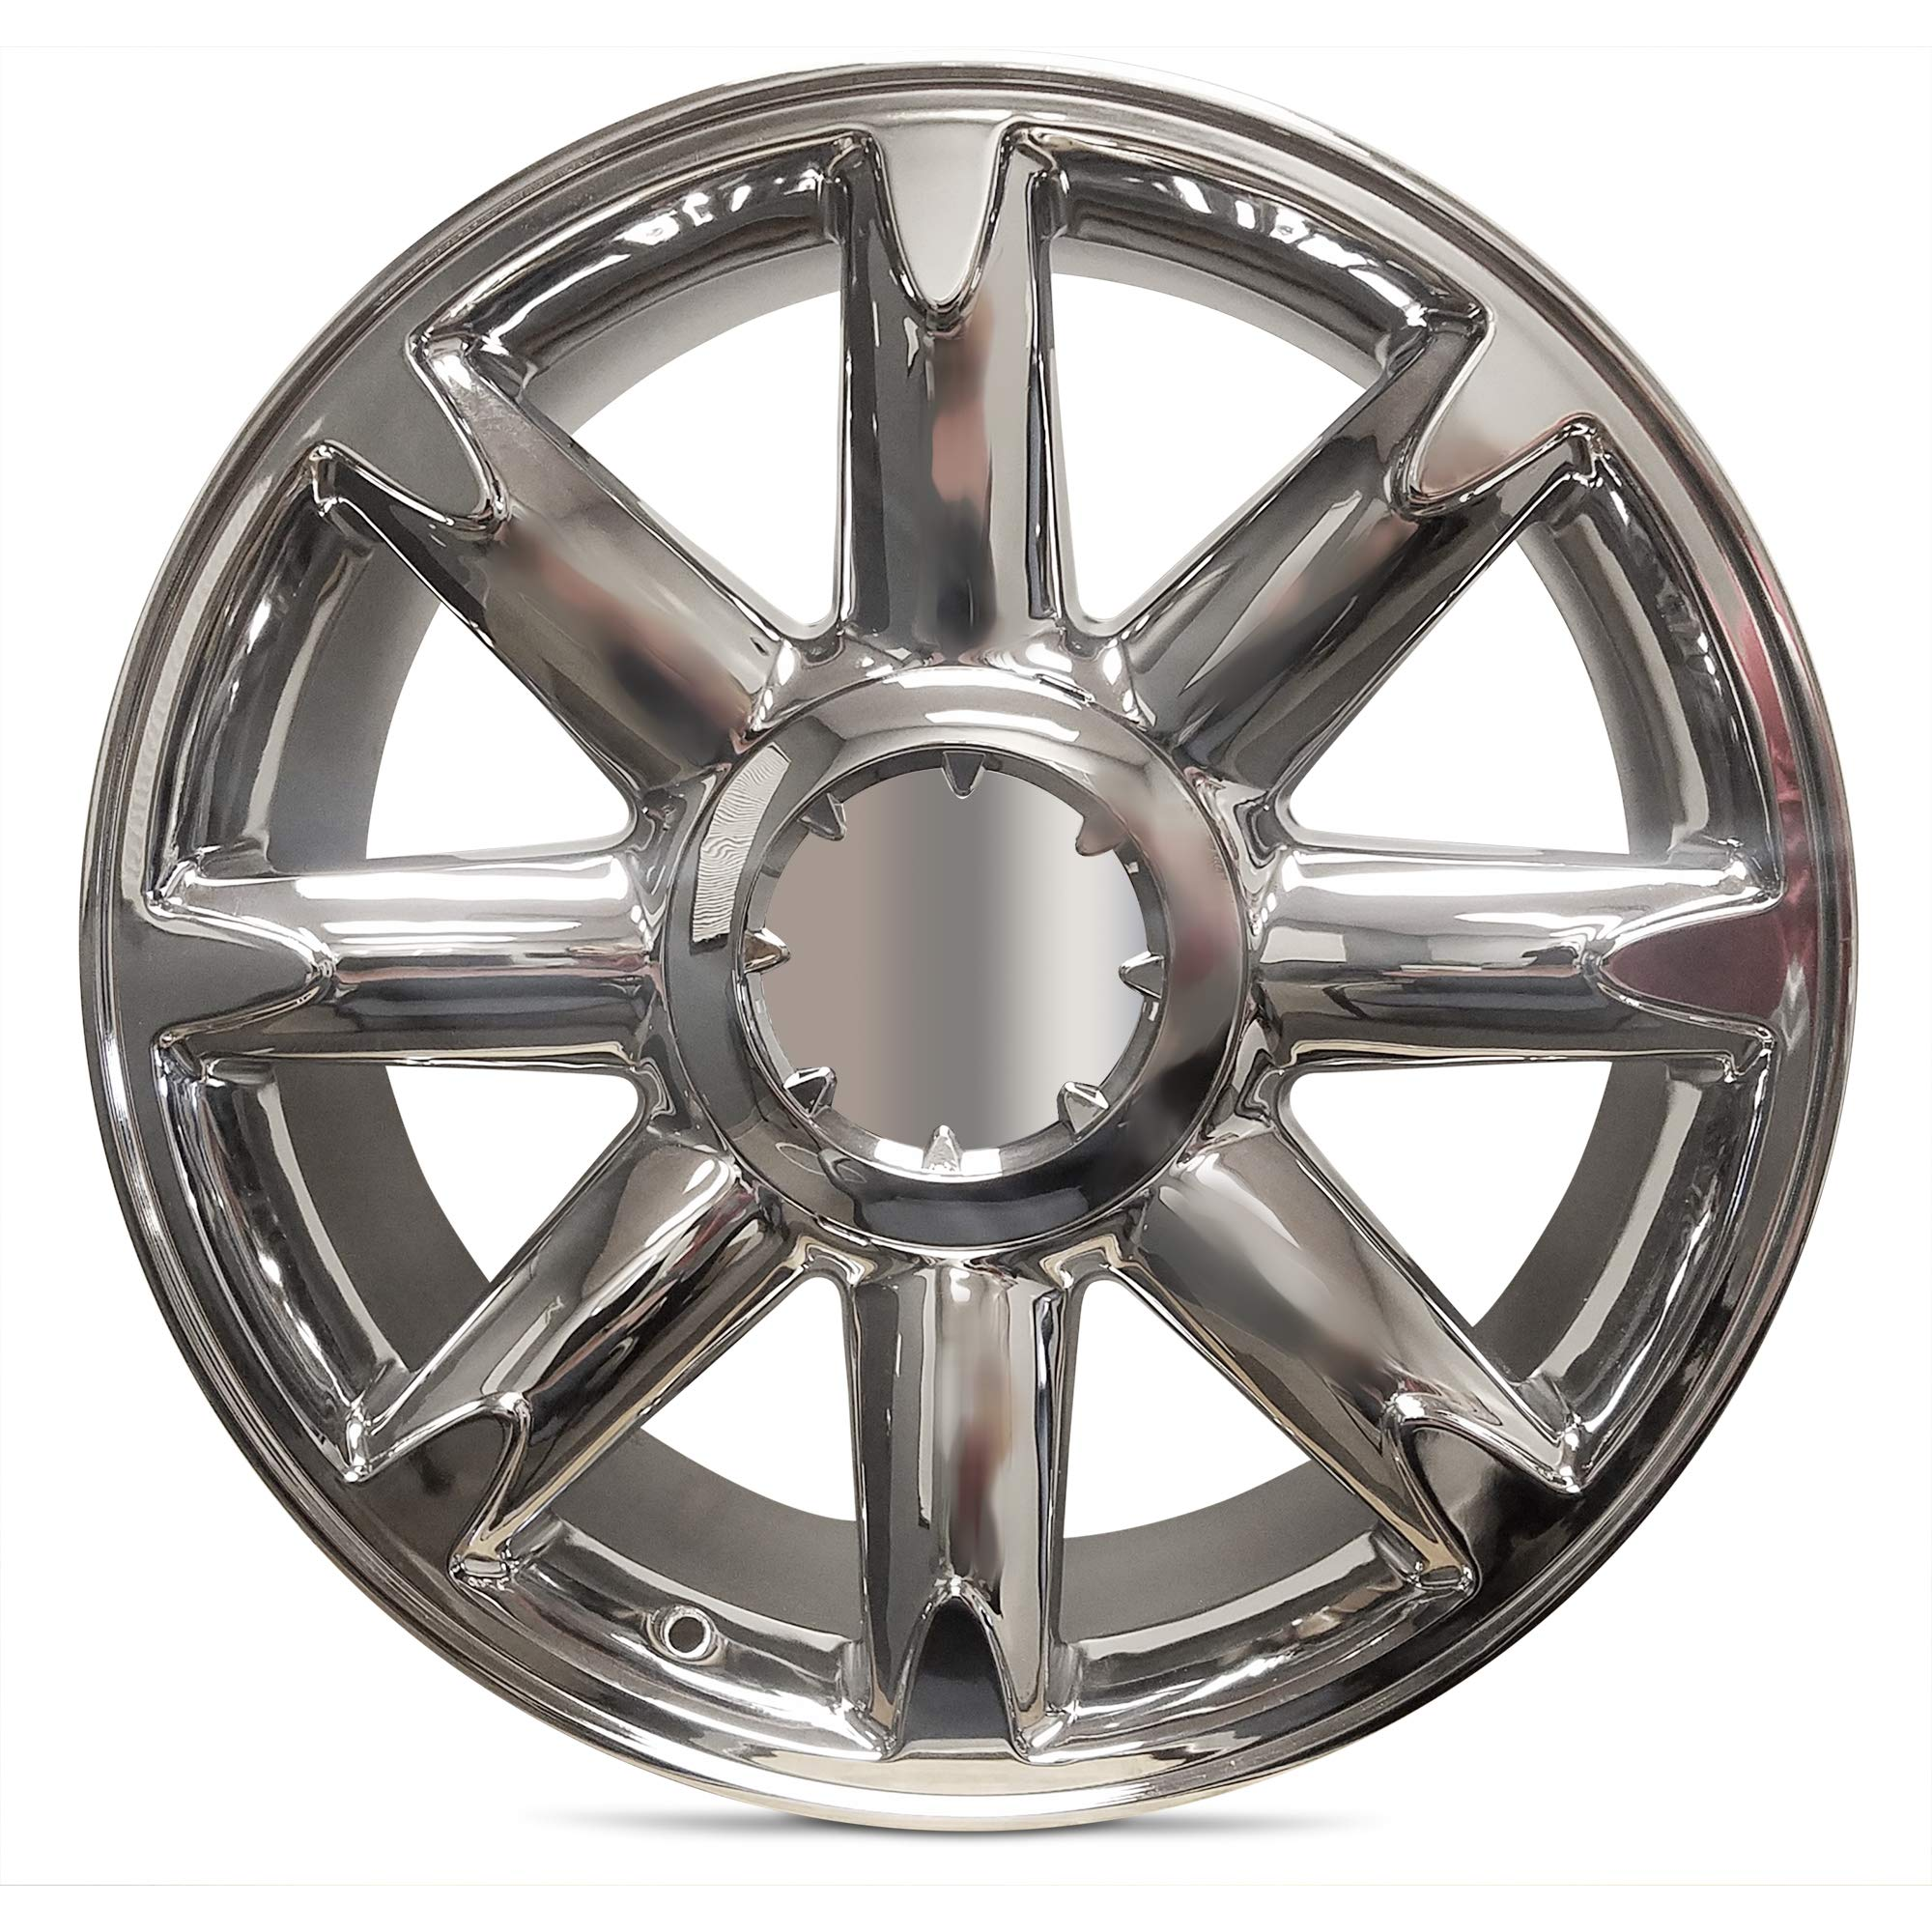 Road Ready Car Wheel For 2007-2013 GMC Sierra 1500 2007-2014 GMC Yukon 20 Inch 6 Lug chrome Aluminum Rim Fits R20 Tire - Exact OEM Replacement - Full-Size Spare by Road Ready Wheels